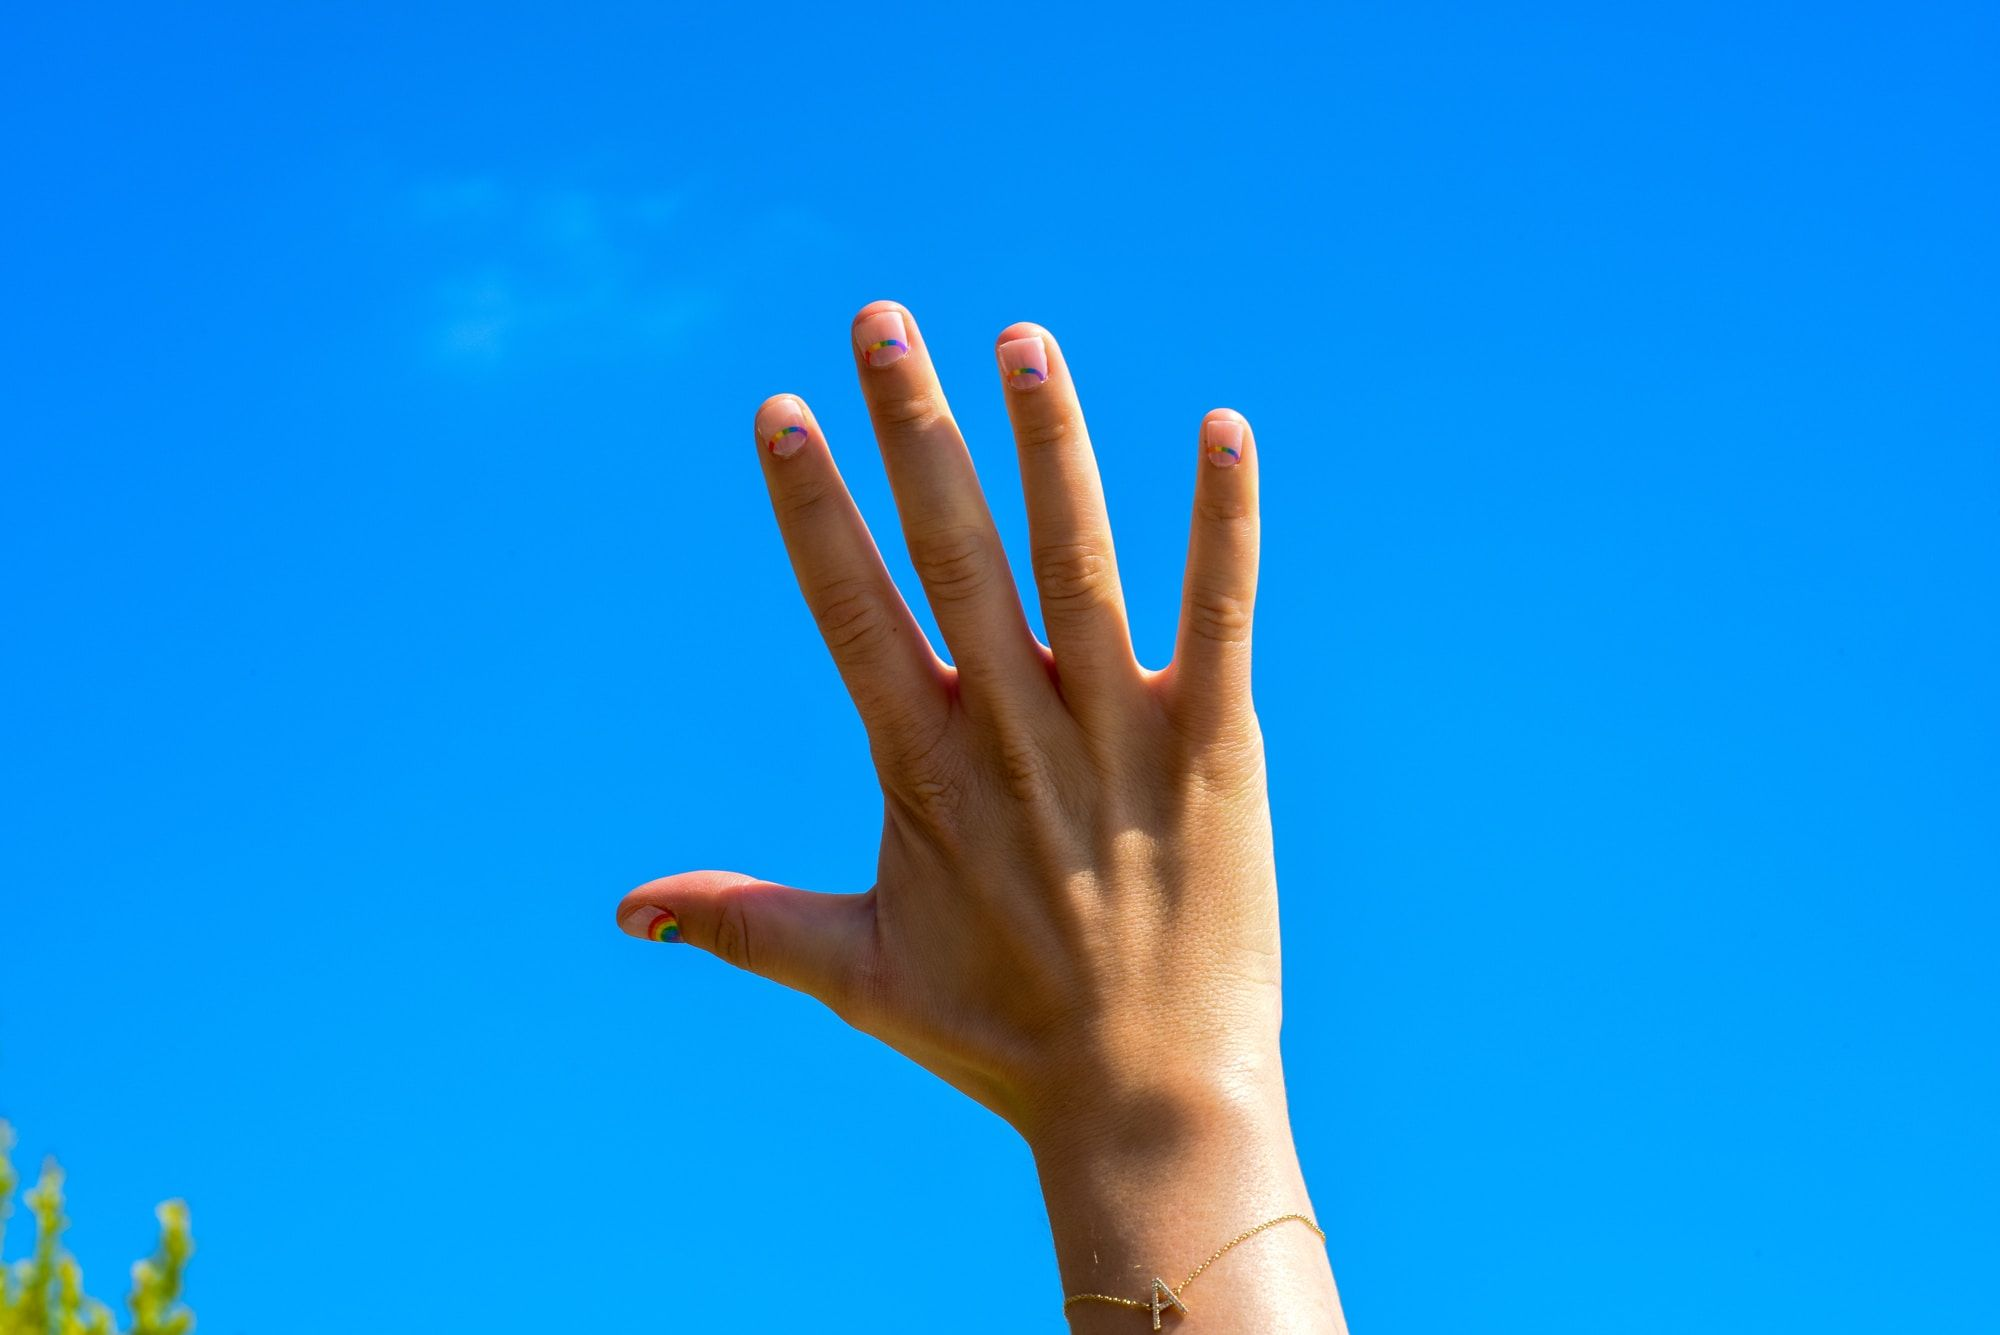 Raised hand image